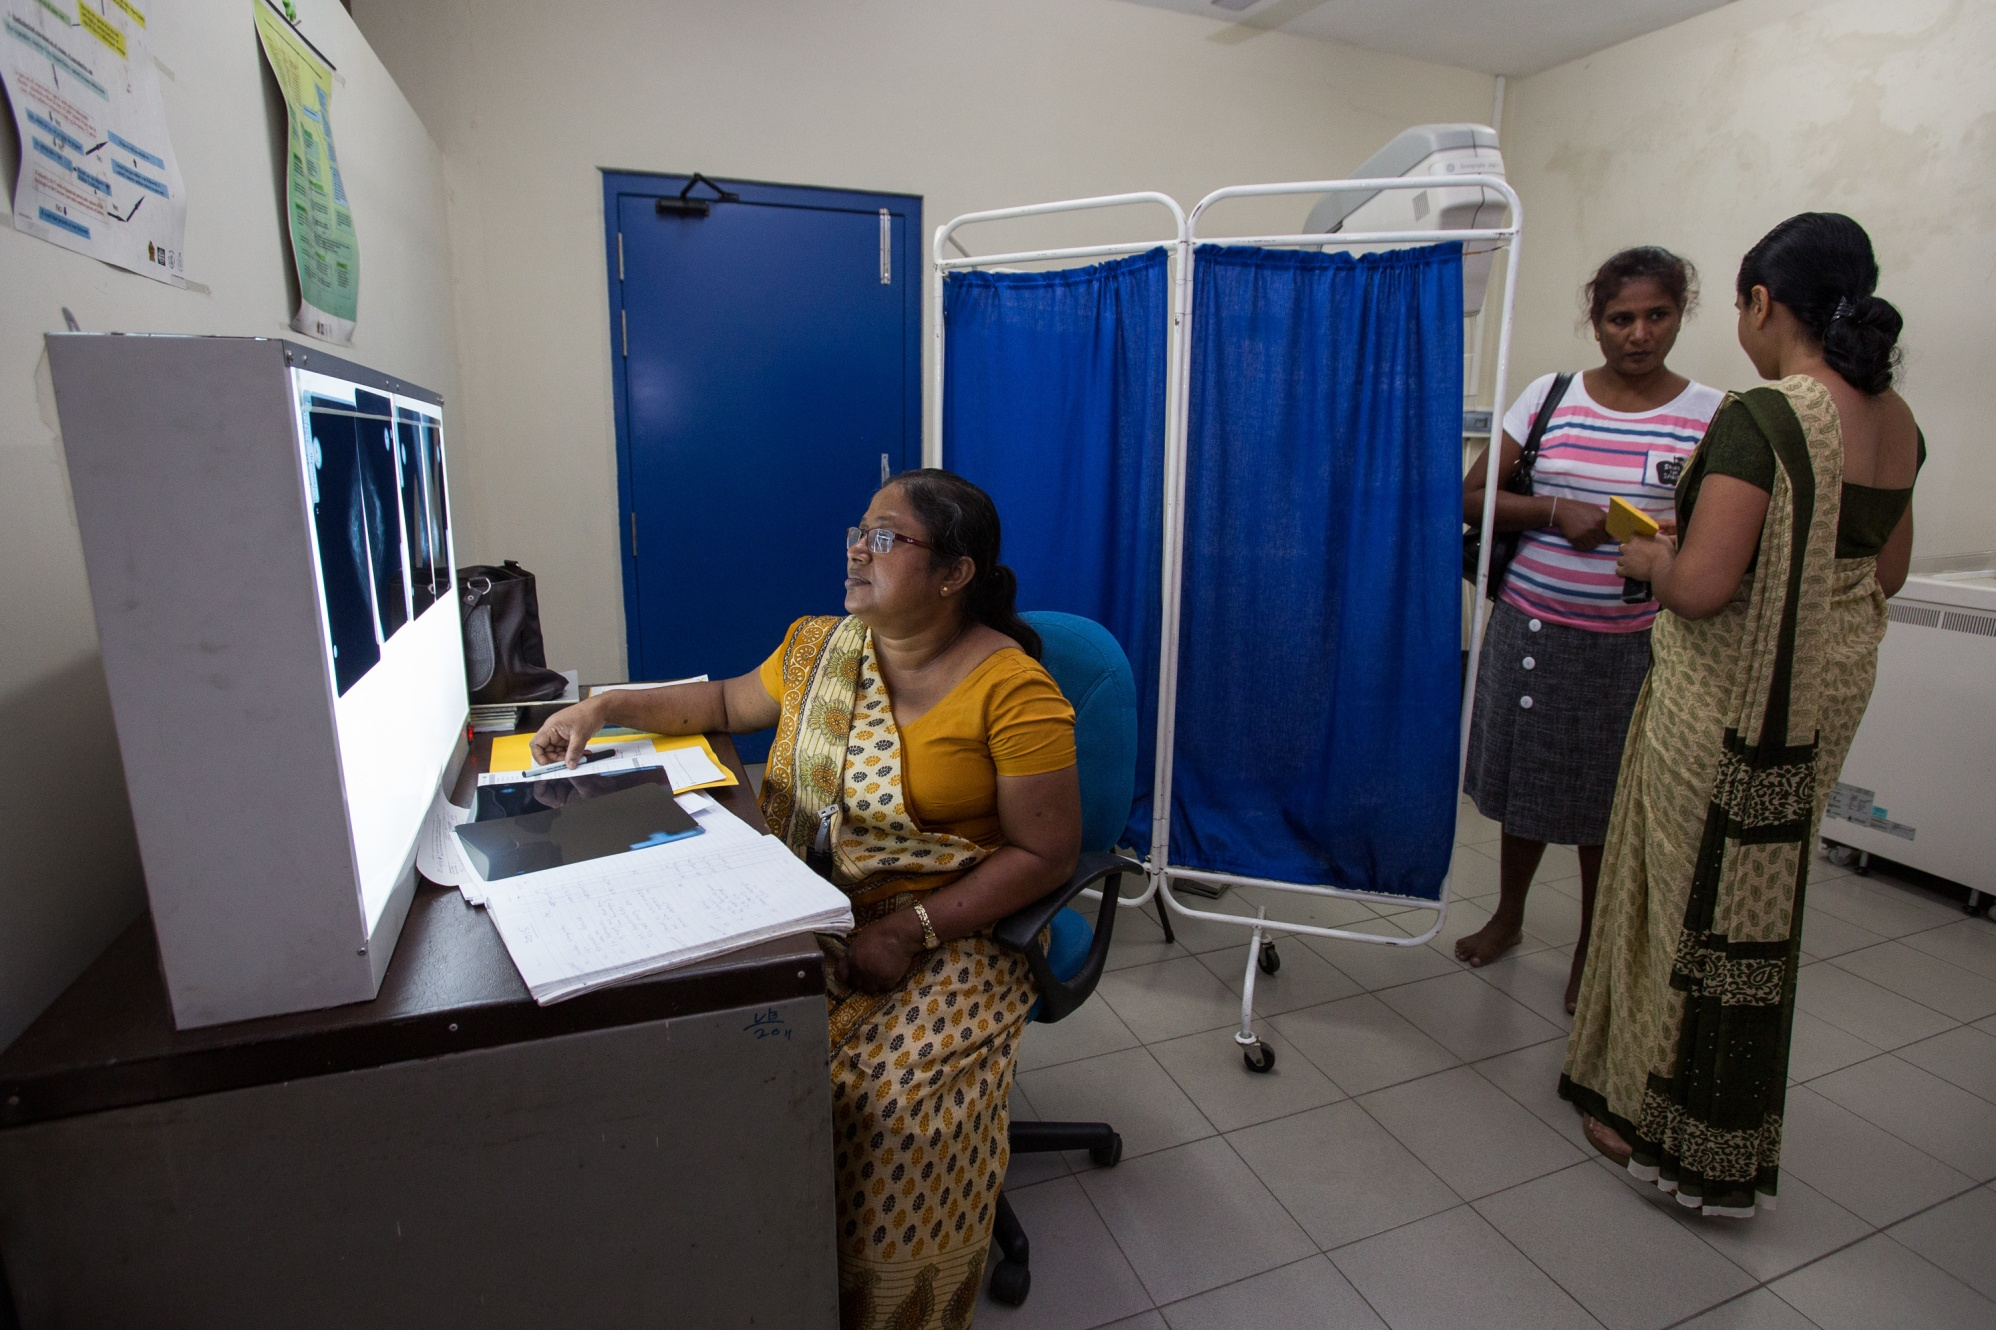 Radiologist Jayantha Mapatona (left) reviews mammogram results at the Cancer Prevention and Early Detection Centre in Colombo, Sri Lanka.